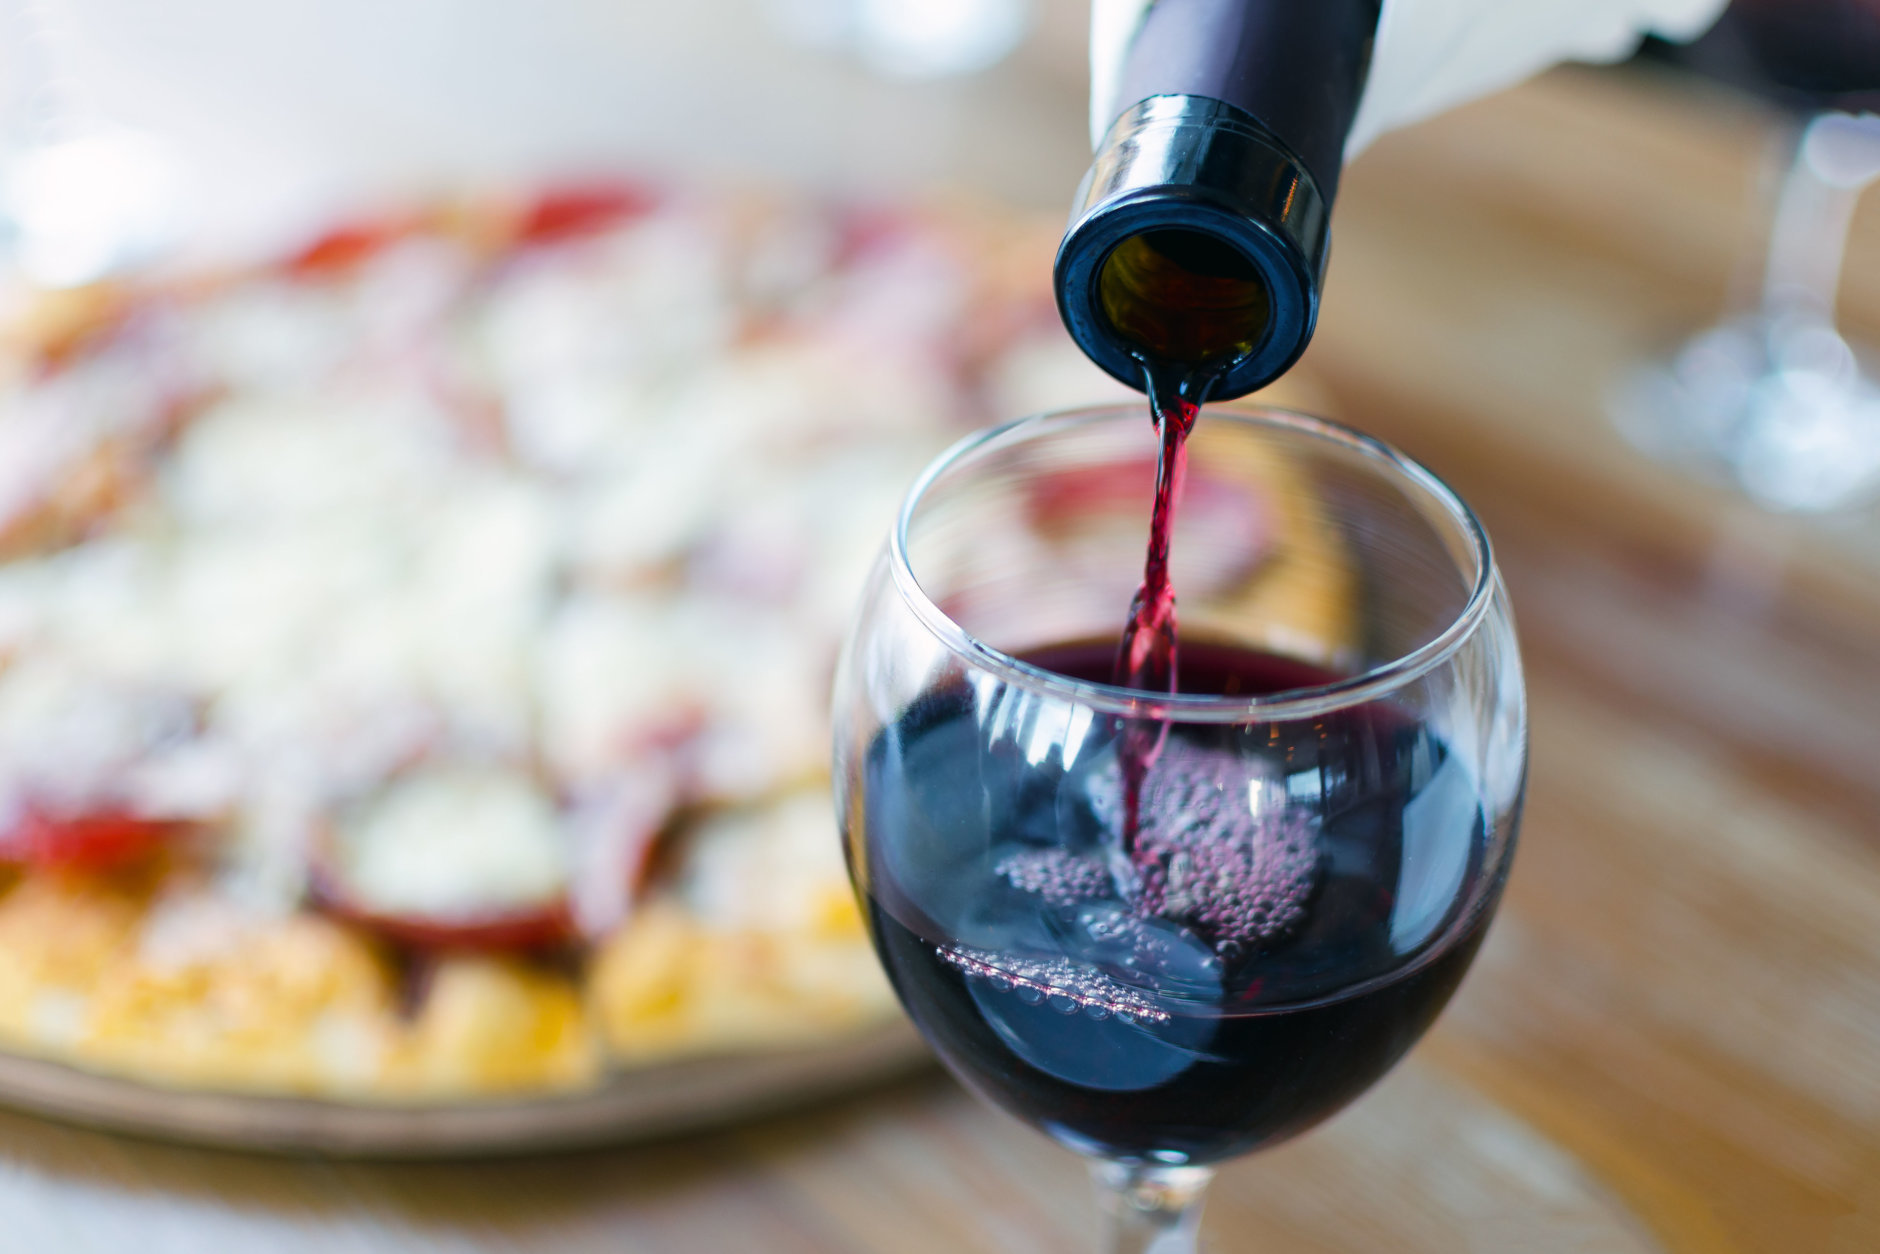 Surrender to the siren call of carryout pizza and a good bottle of wine. (Getty Images)